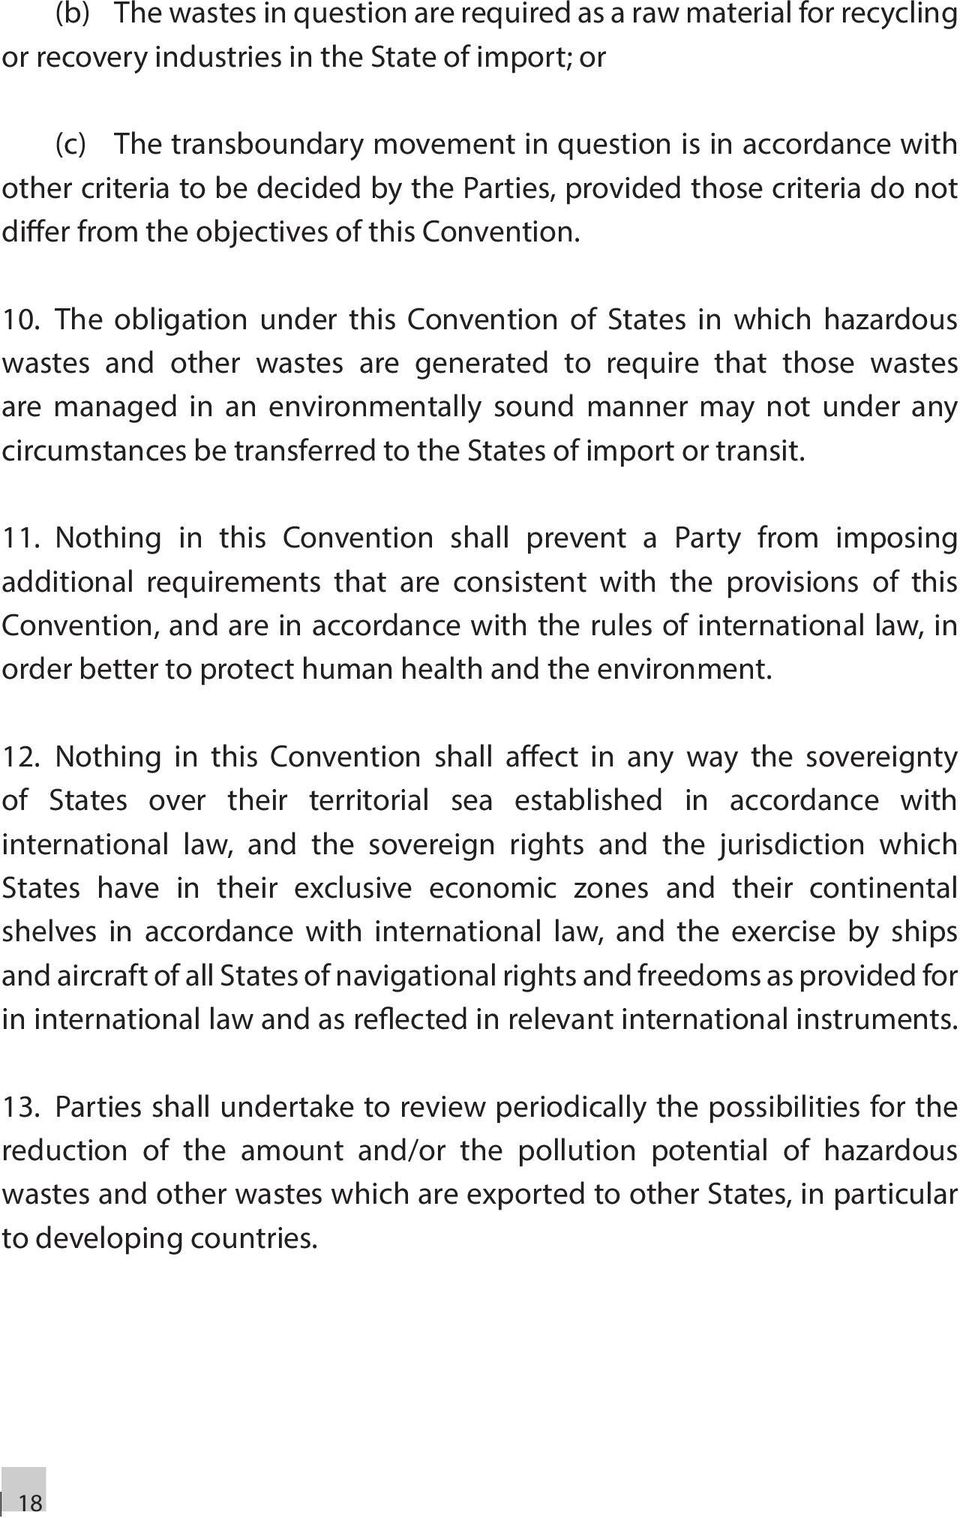 The obligation under this Convention of States in which hazardous wastes and other wastes are generated to require that those wastes are managed in an environmentally sound manner may not under any